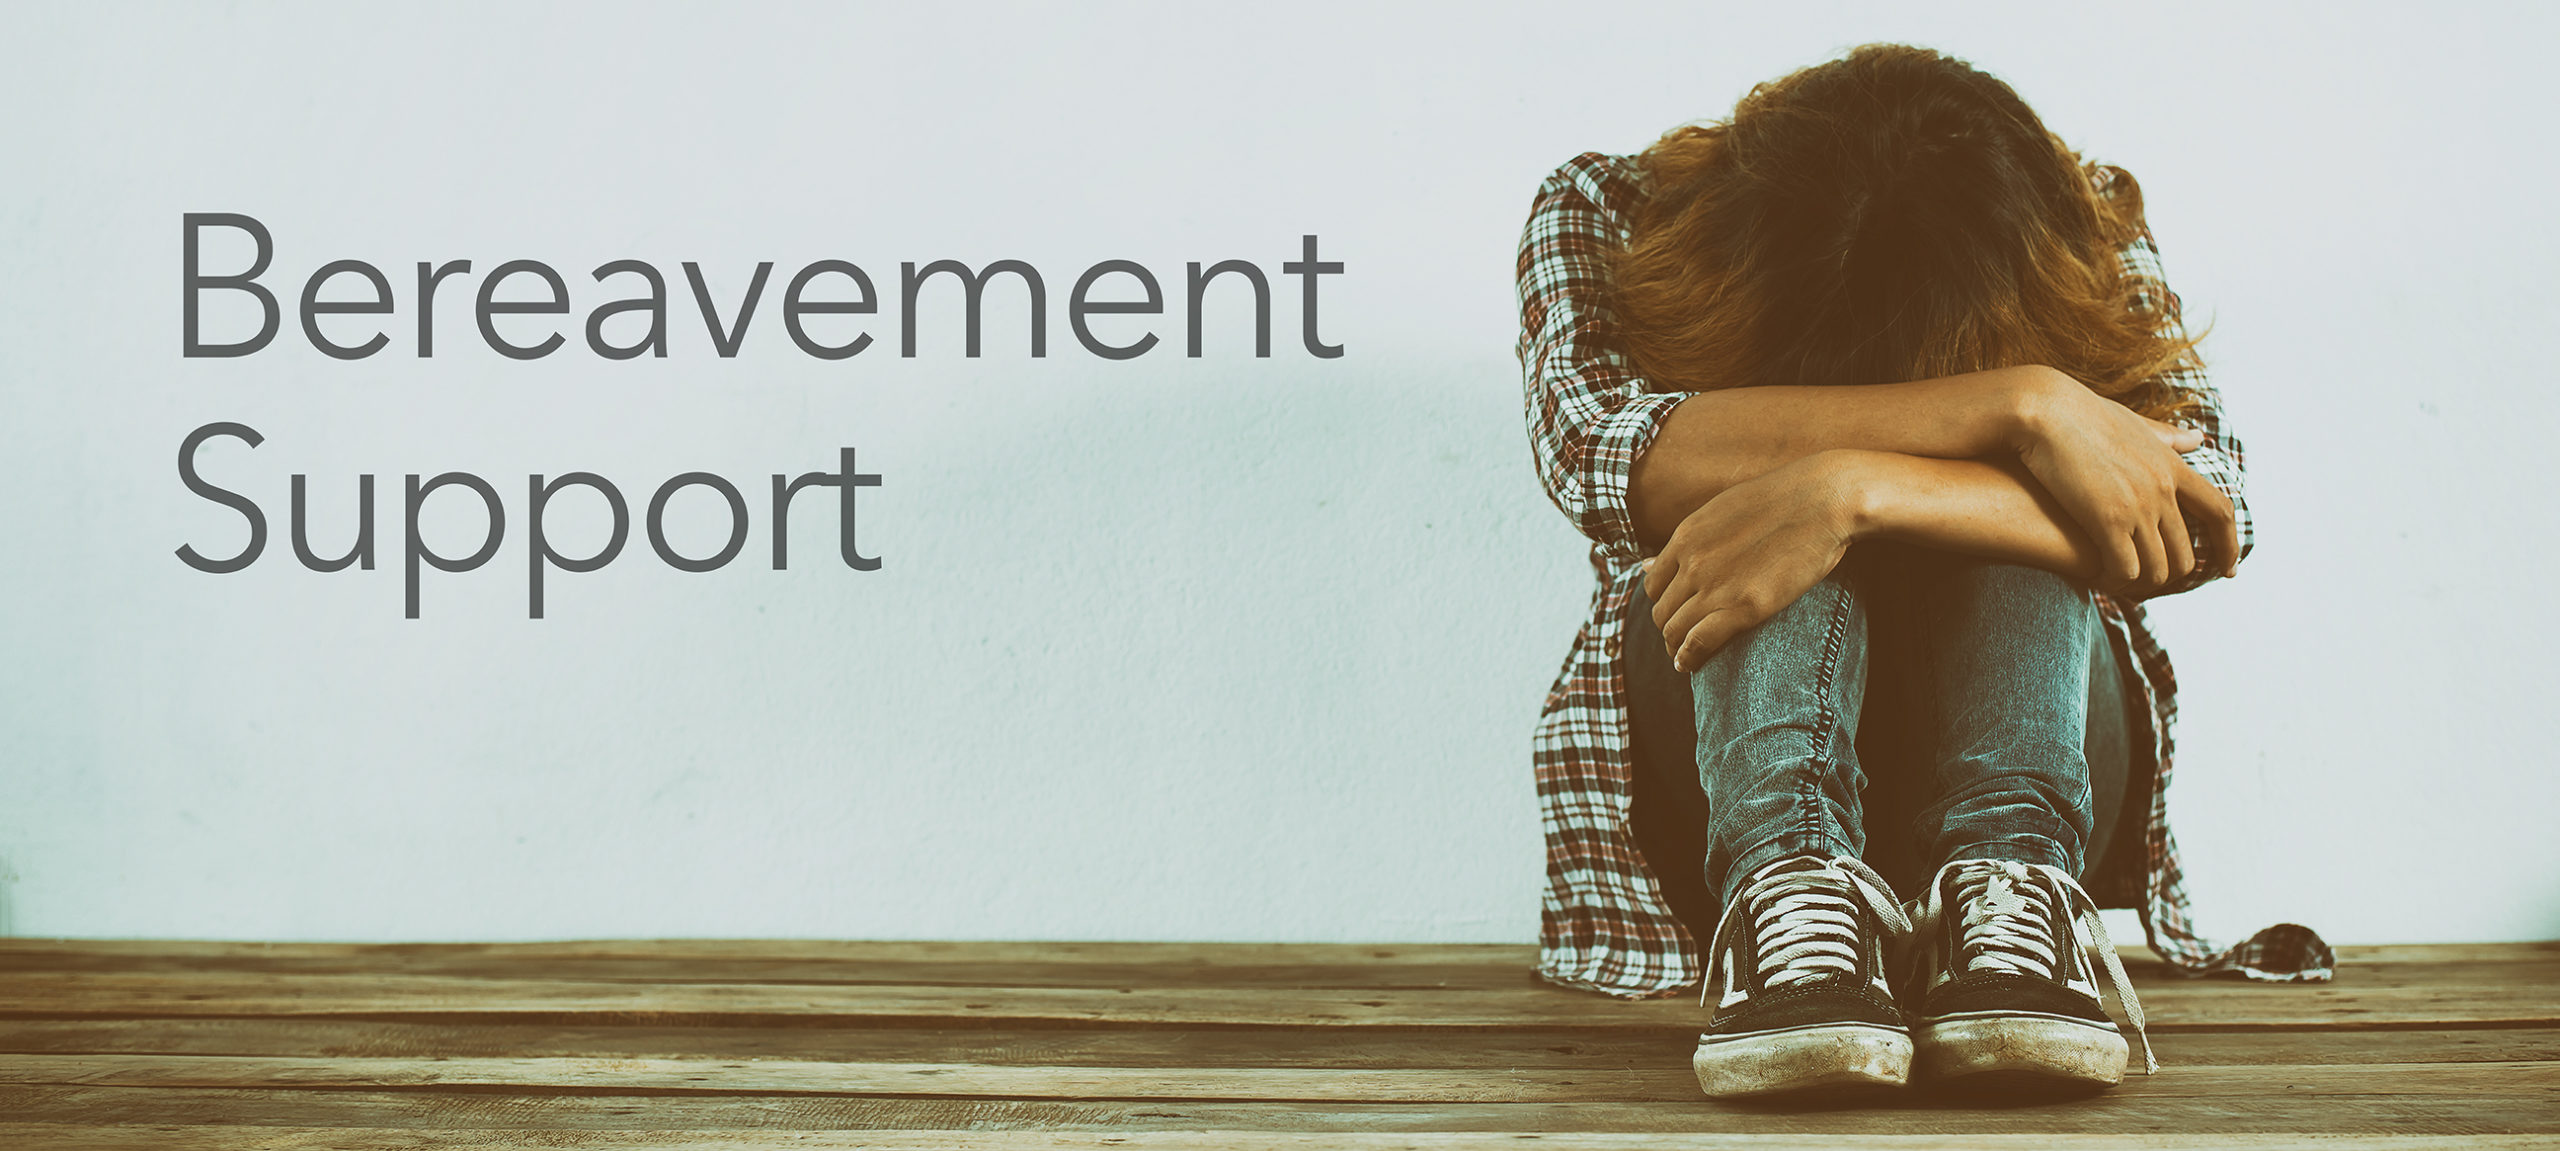 Bereavement Support Information